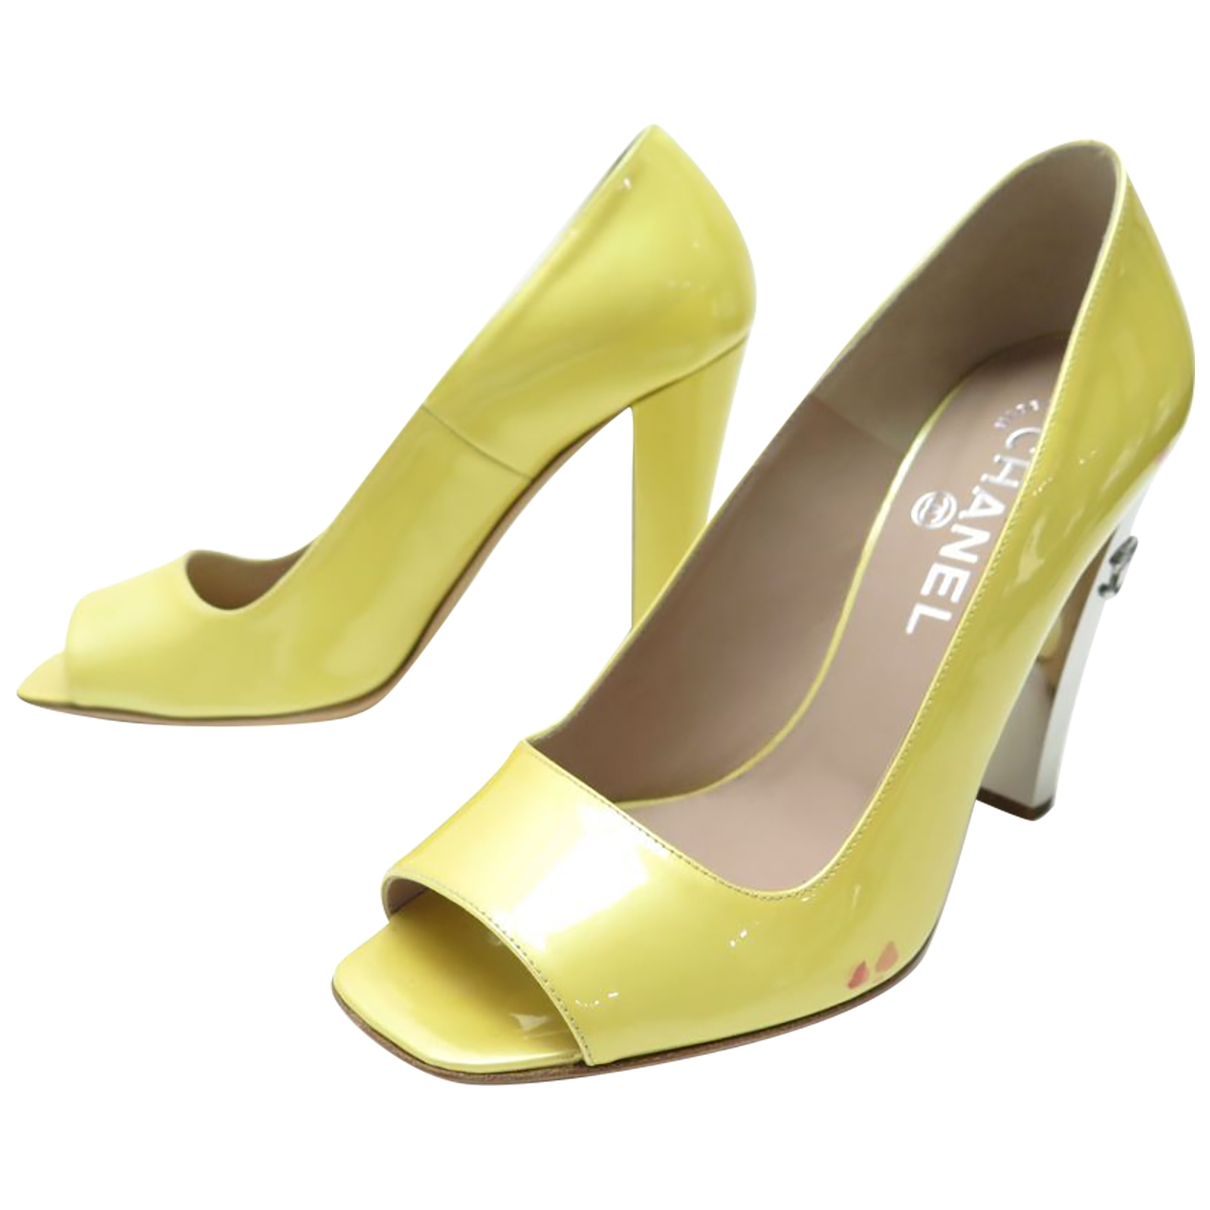 Chanel \N Yellow Patent leather Sandals for Women 37.5 EU